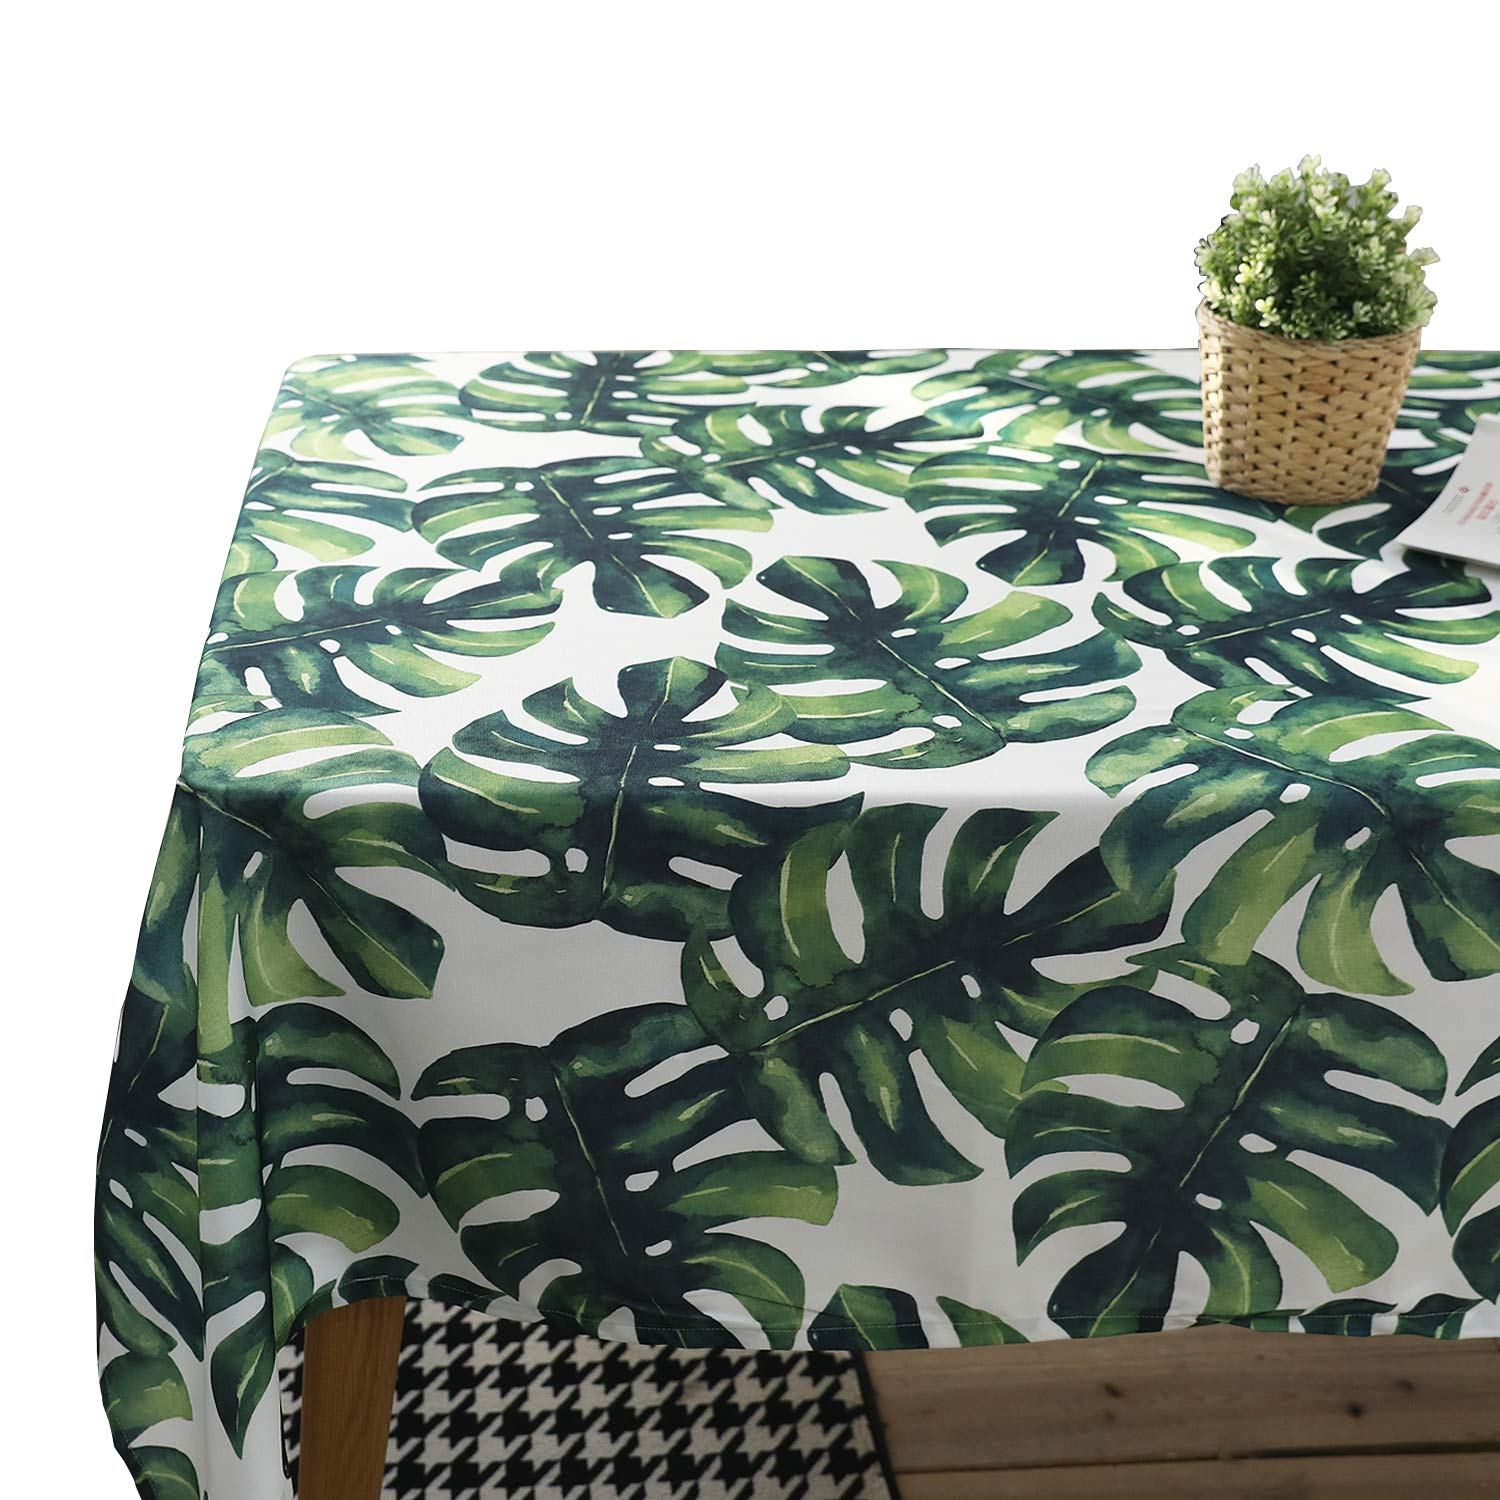 Tablecloth,JZY Waterproof Cotton Table Cover 60 x 104 Inches for Kitchen Dining Table Palm Leaf Table Cover For Rectangle Table